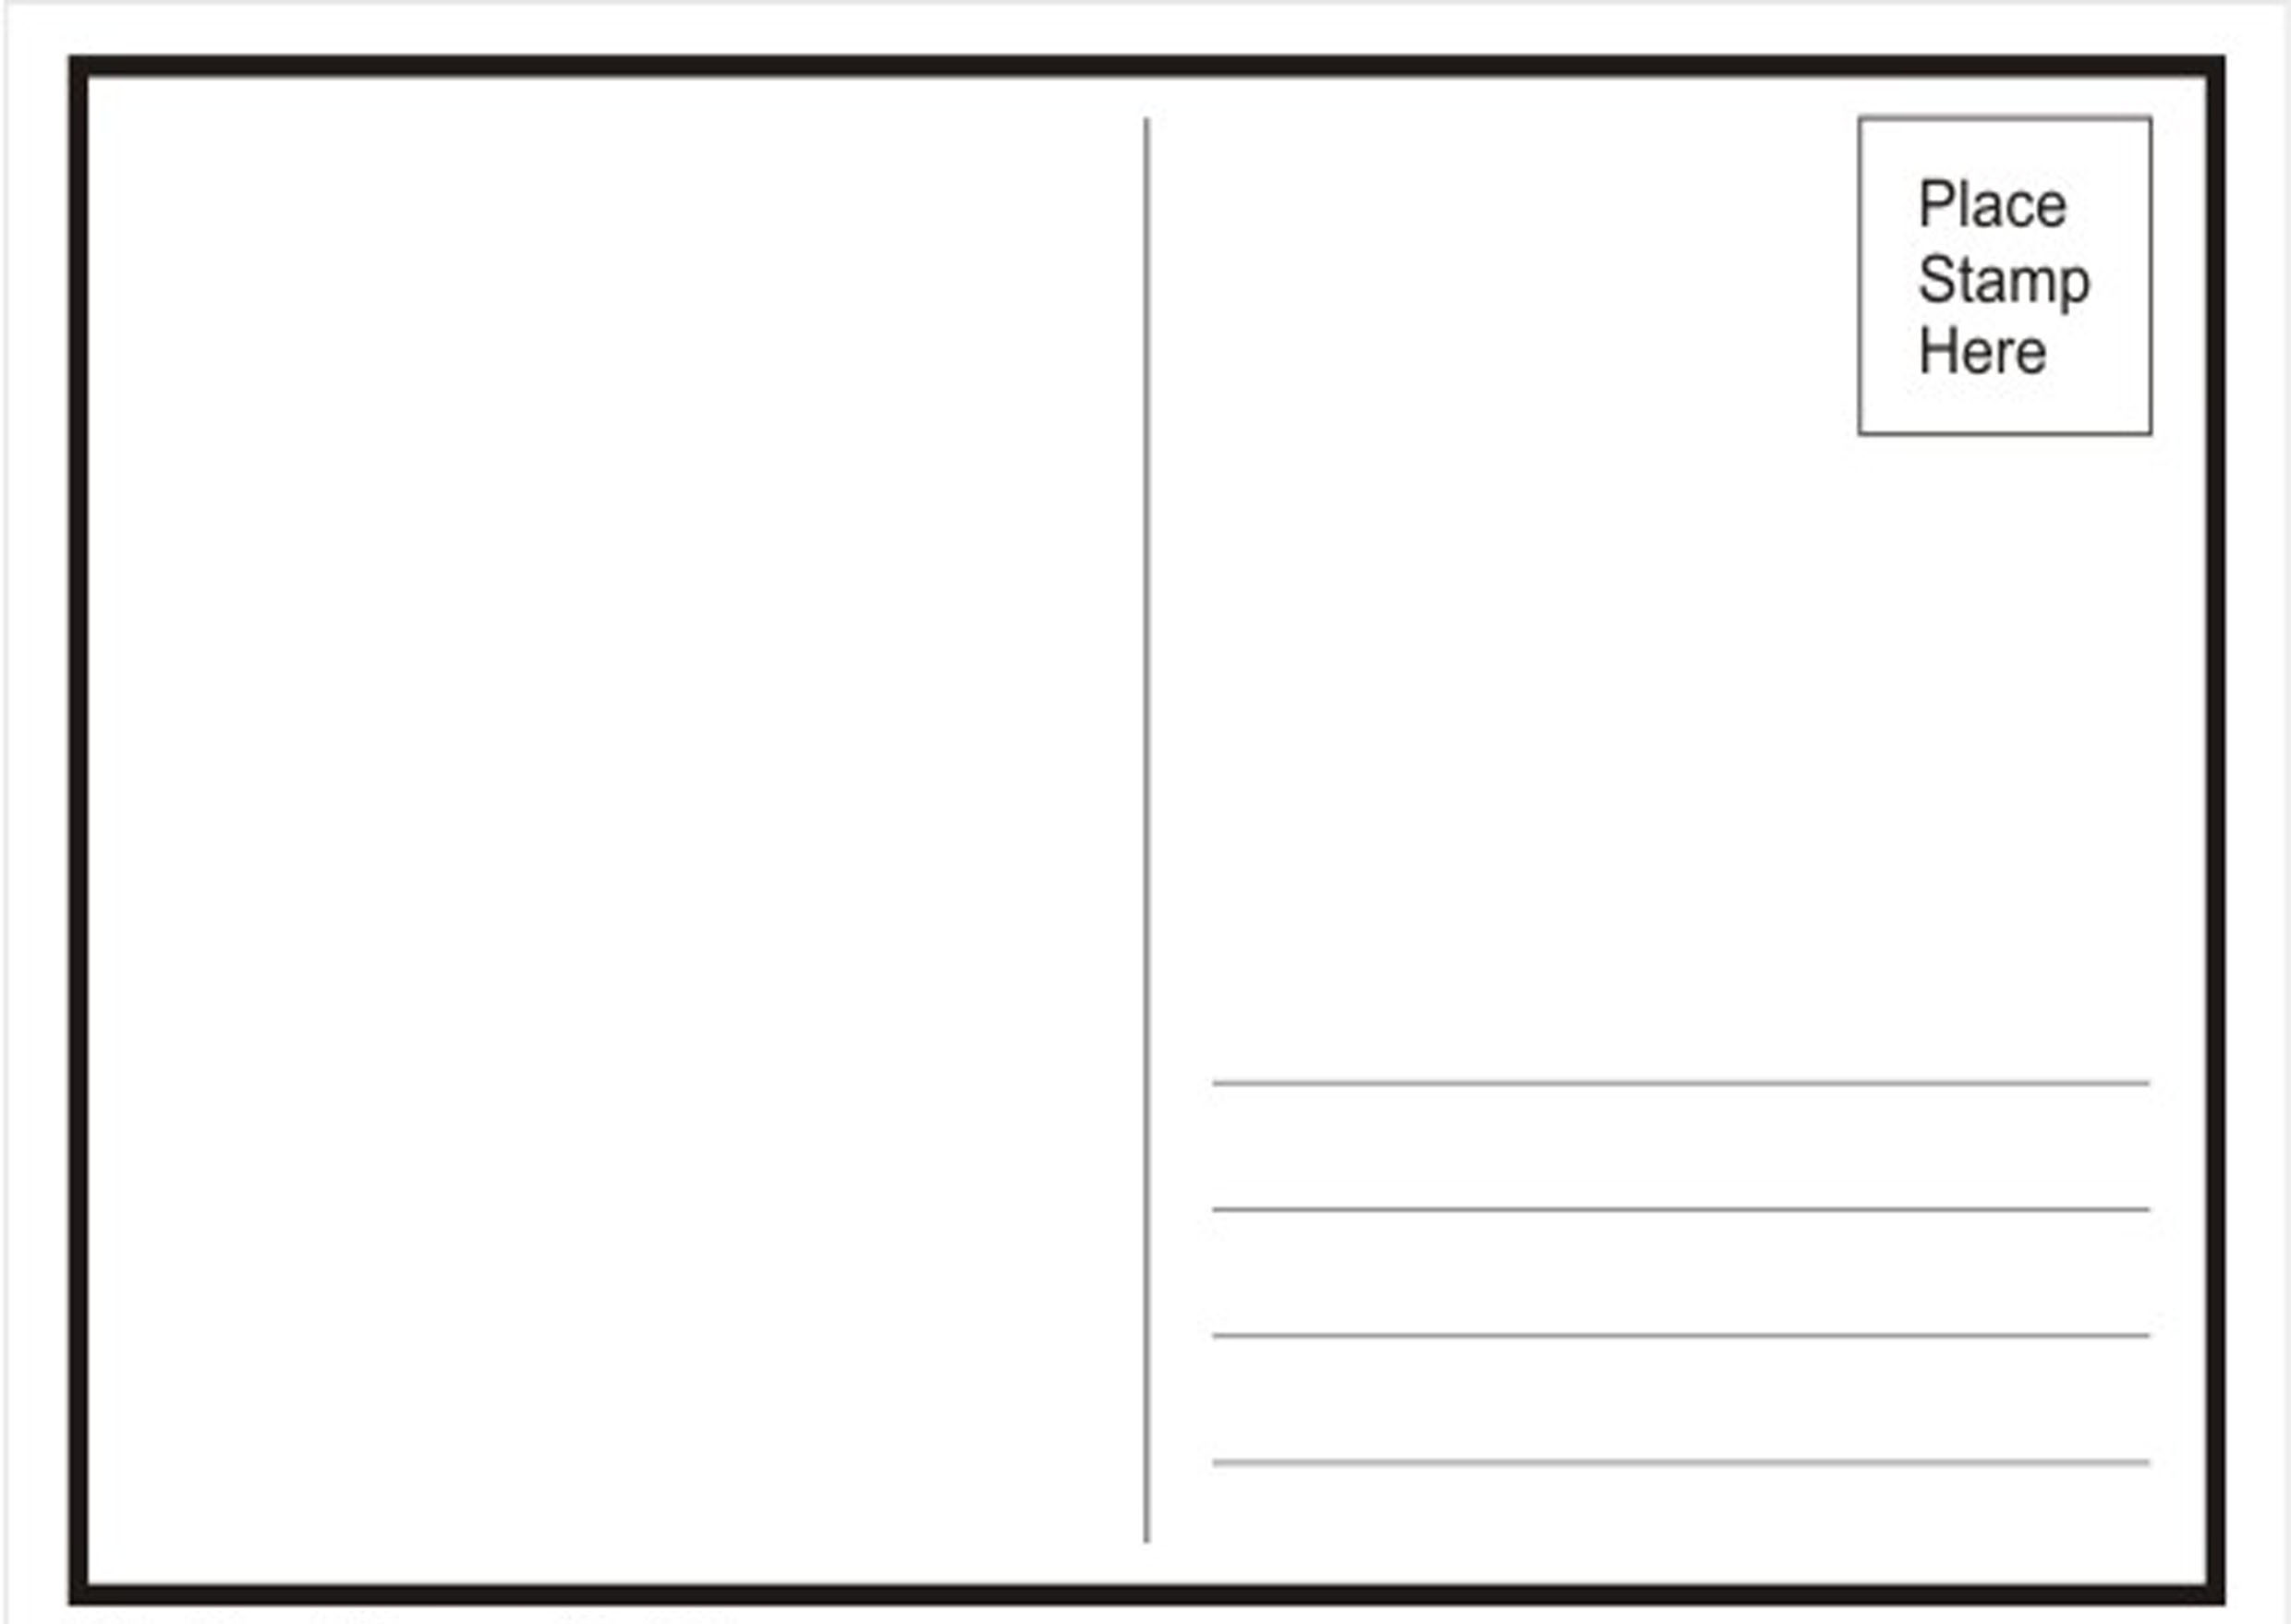 Alg research lorenashleigh page 3 for Jumbo postcard template